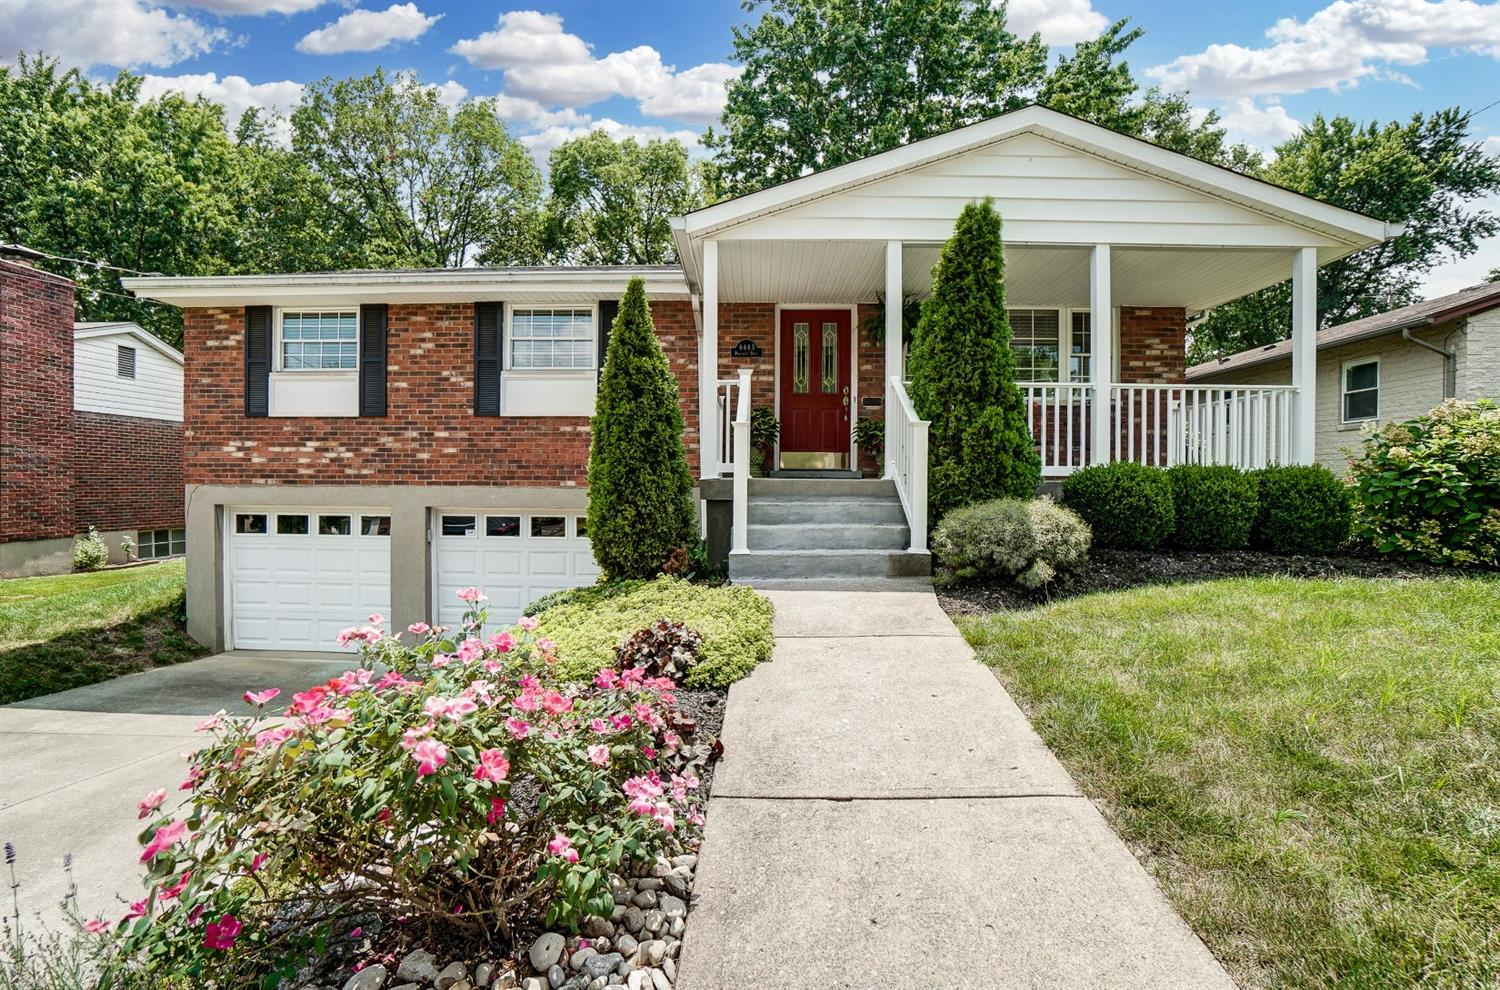 4443 Pinecroft Drive, Green Twp, Ohio 45211, 3 Bedrooms Bedrooms, 7 Rooms Rooms,2 BathroomsBathrooms,Single Family Residence,For Sale,Pinecroft,1718777